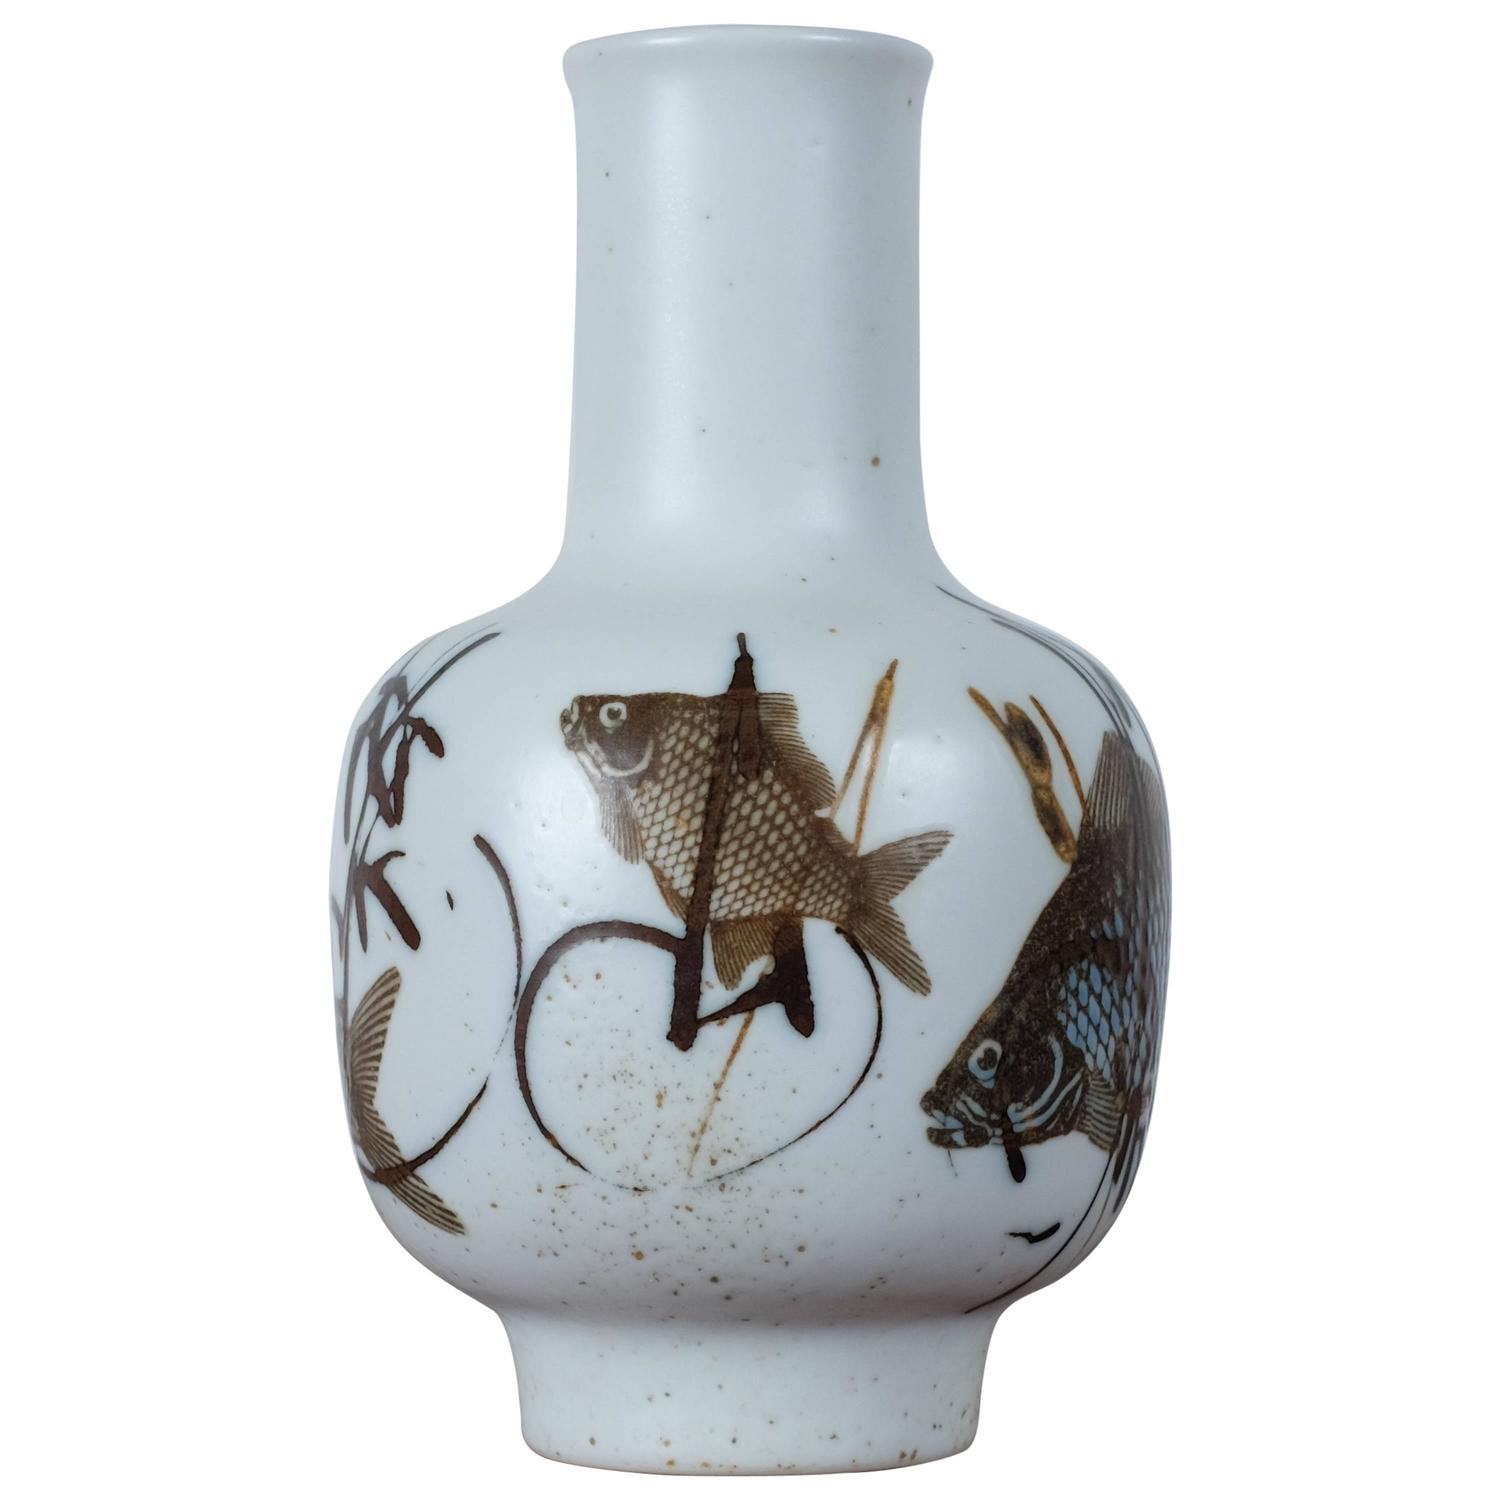 Royal copenhagen fish vase by nils thorsson for sale at 1stdibs reviewsmspy